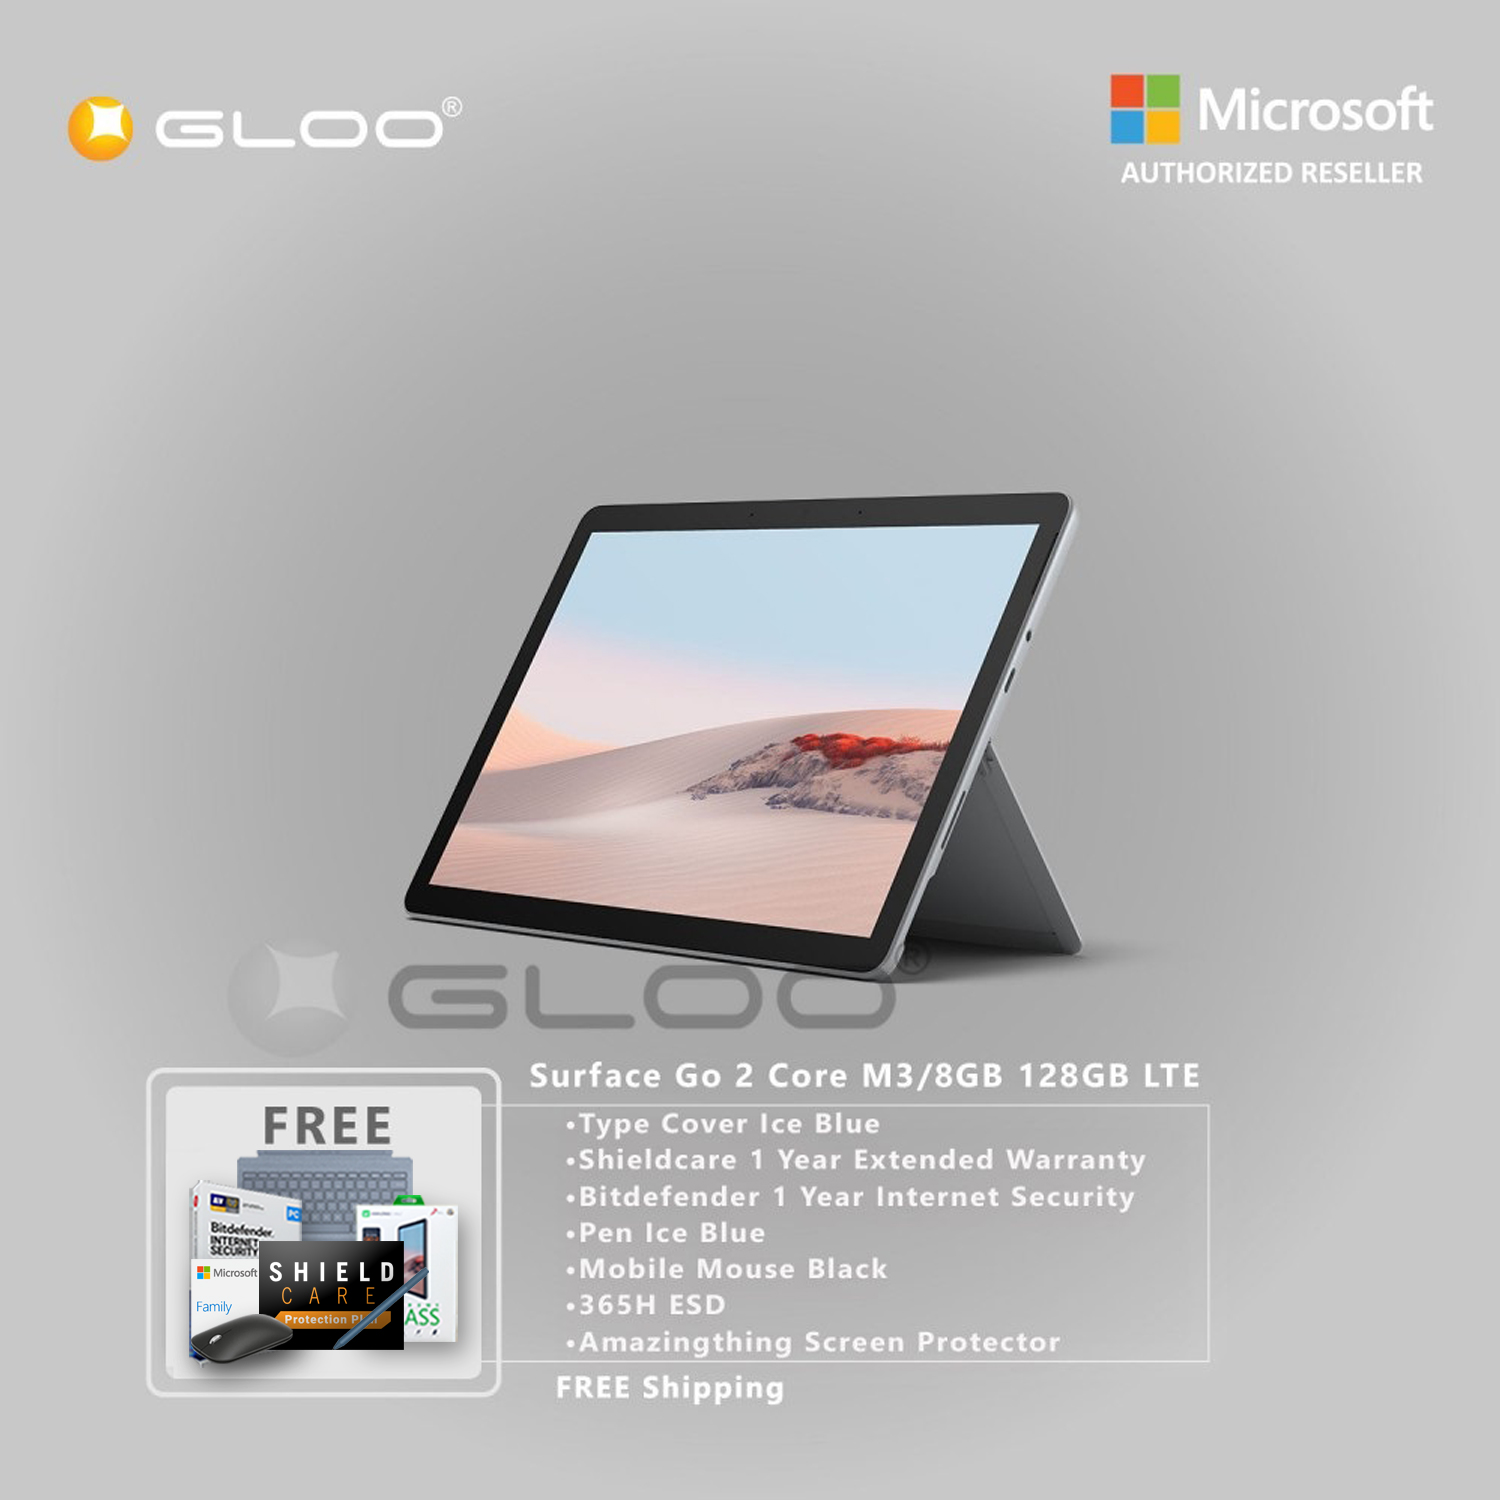 Microsoft Surface Go 2 Core M3/8GB 128GB LTE + Surface Go Type Cover Ice Blue + Shield Care 1 Year Extended Warranty+ Bitdefender 1 Year Internet Security+ Pen Ice Blue + Mobile Mouse Black + 365H ESD + Amazingthing Screen Protector [BPPMSOFZCBAMII]